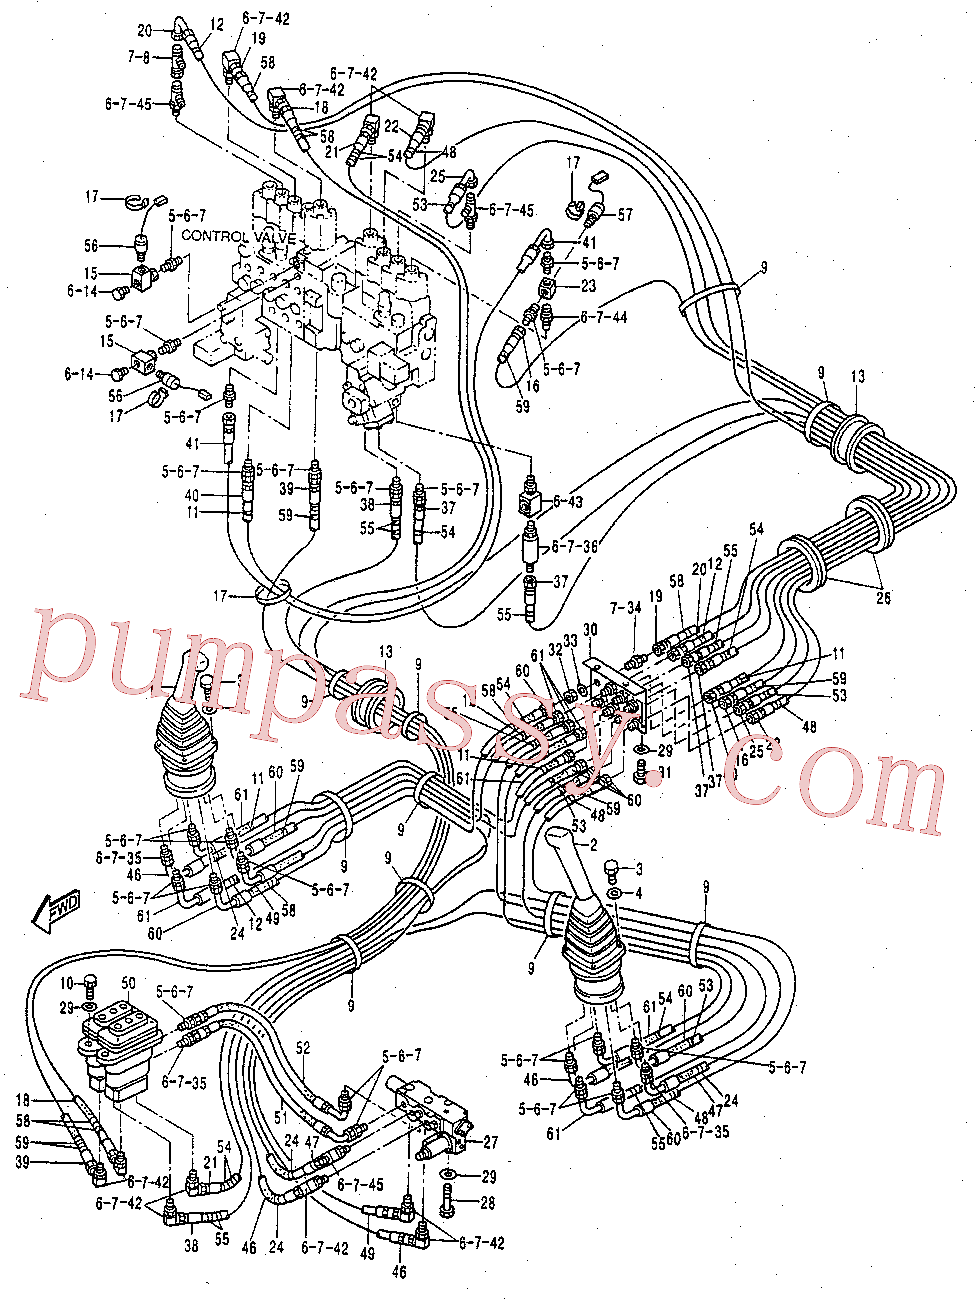 CAT 124-1104 for 320B Excavator(EXC) hydraulic system 119-2390 Assembly